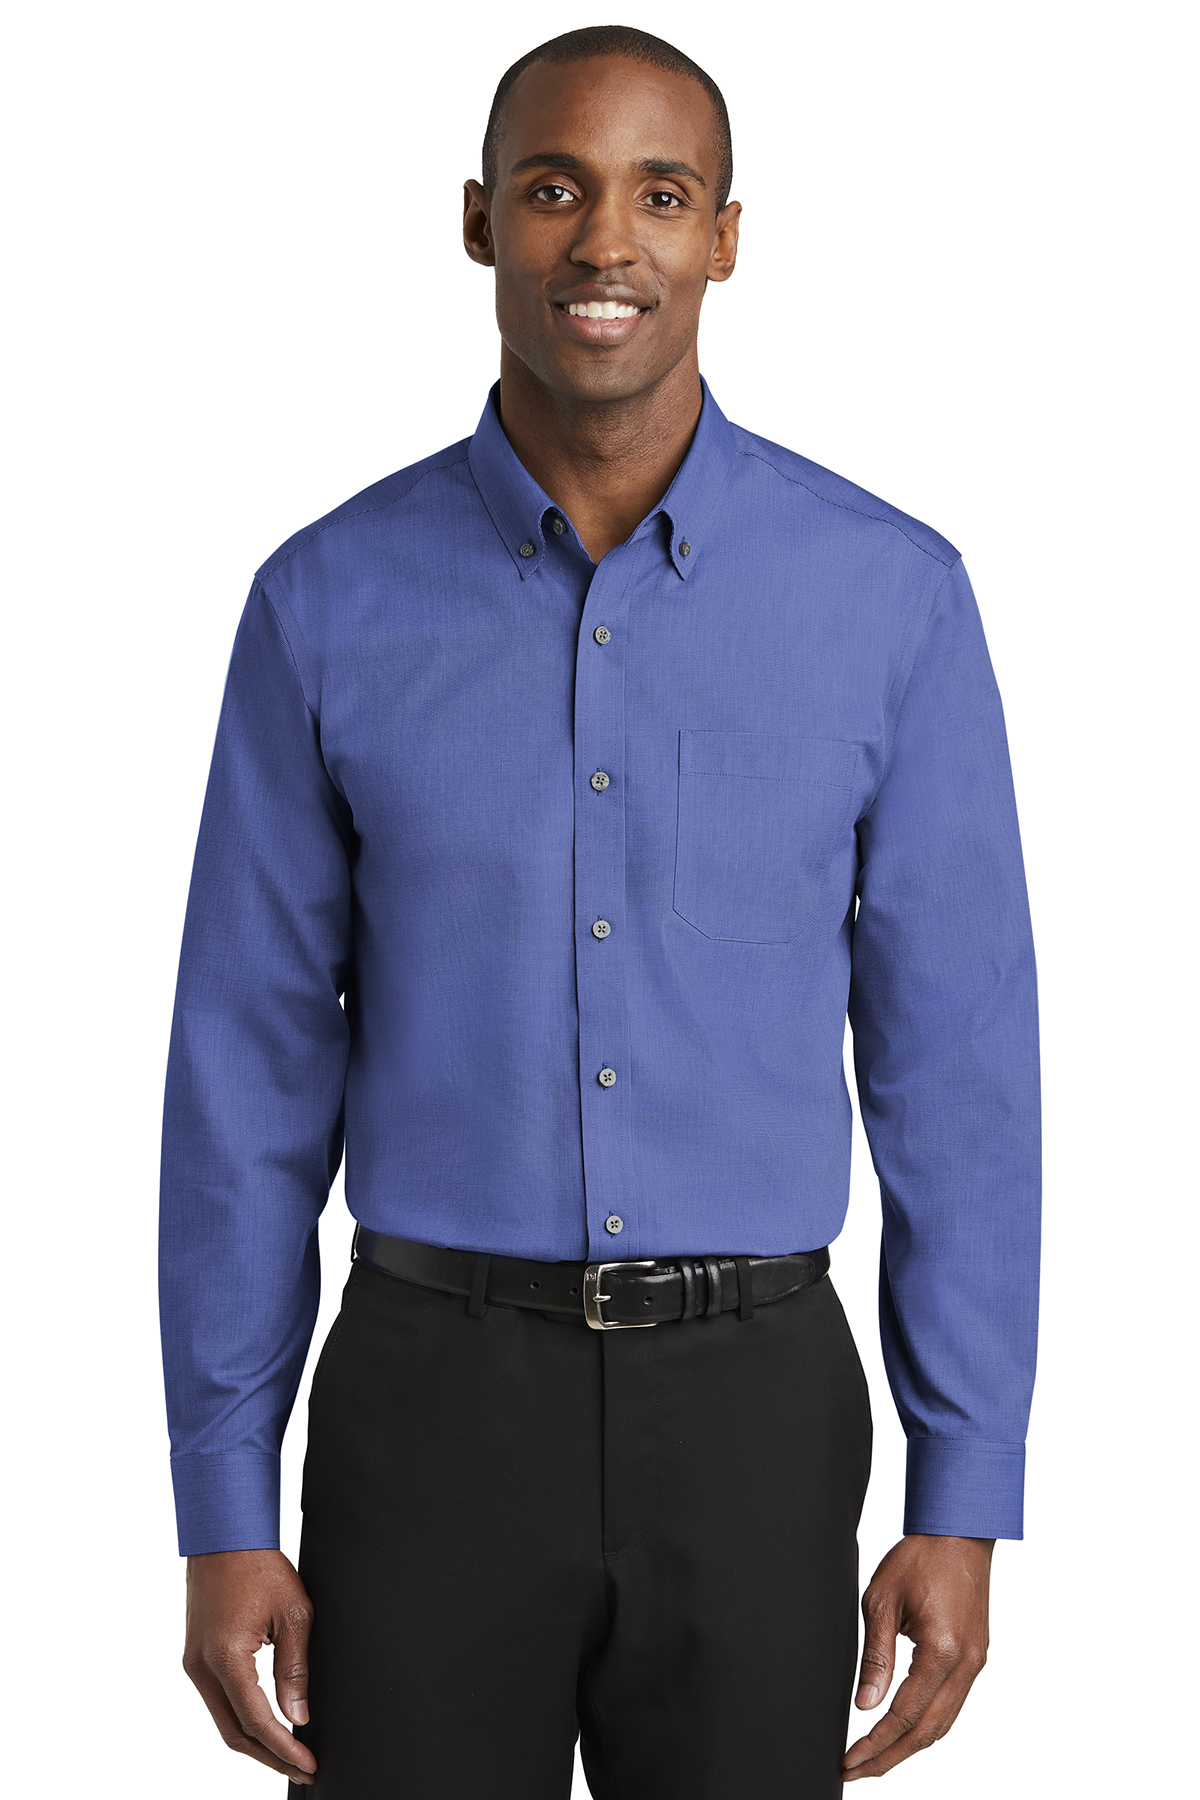 Red House TLRH370 - Men's Tall Nailhead Non-Iron Shirt